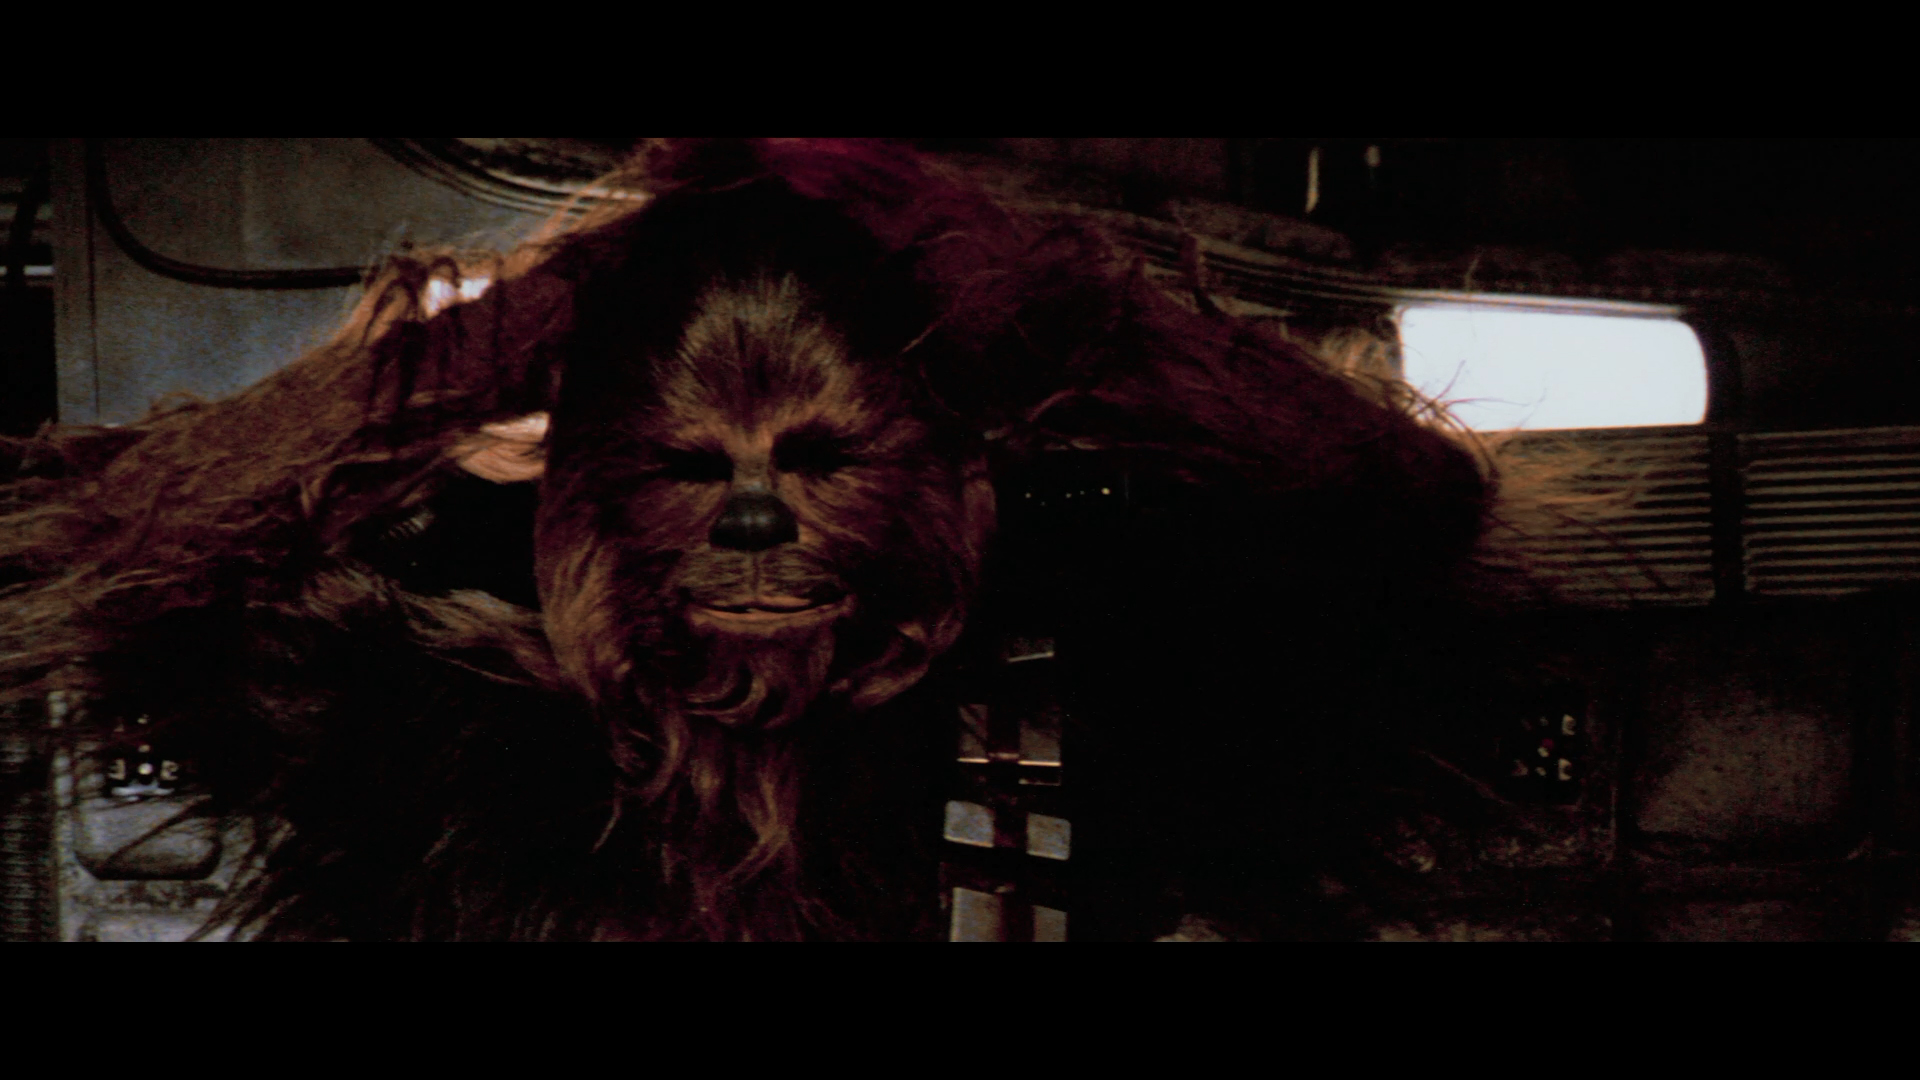 Chewbacca, too red in 4K77 Test Encode